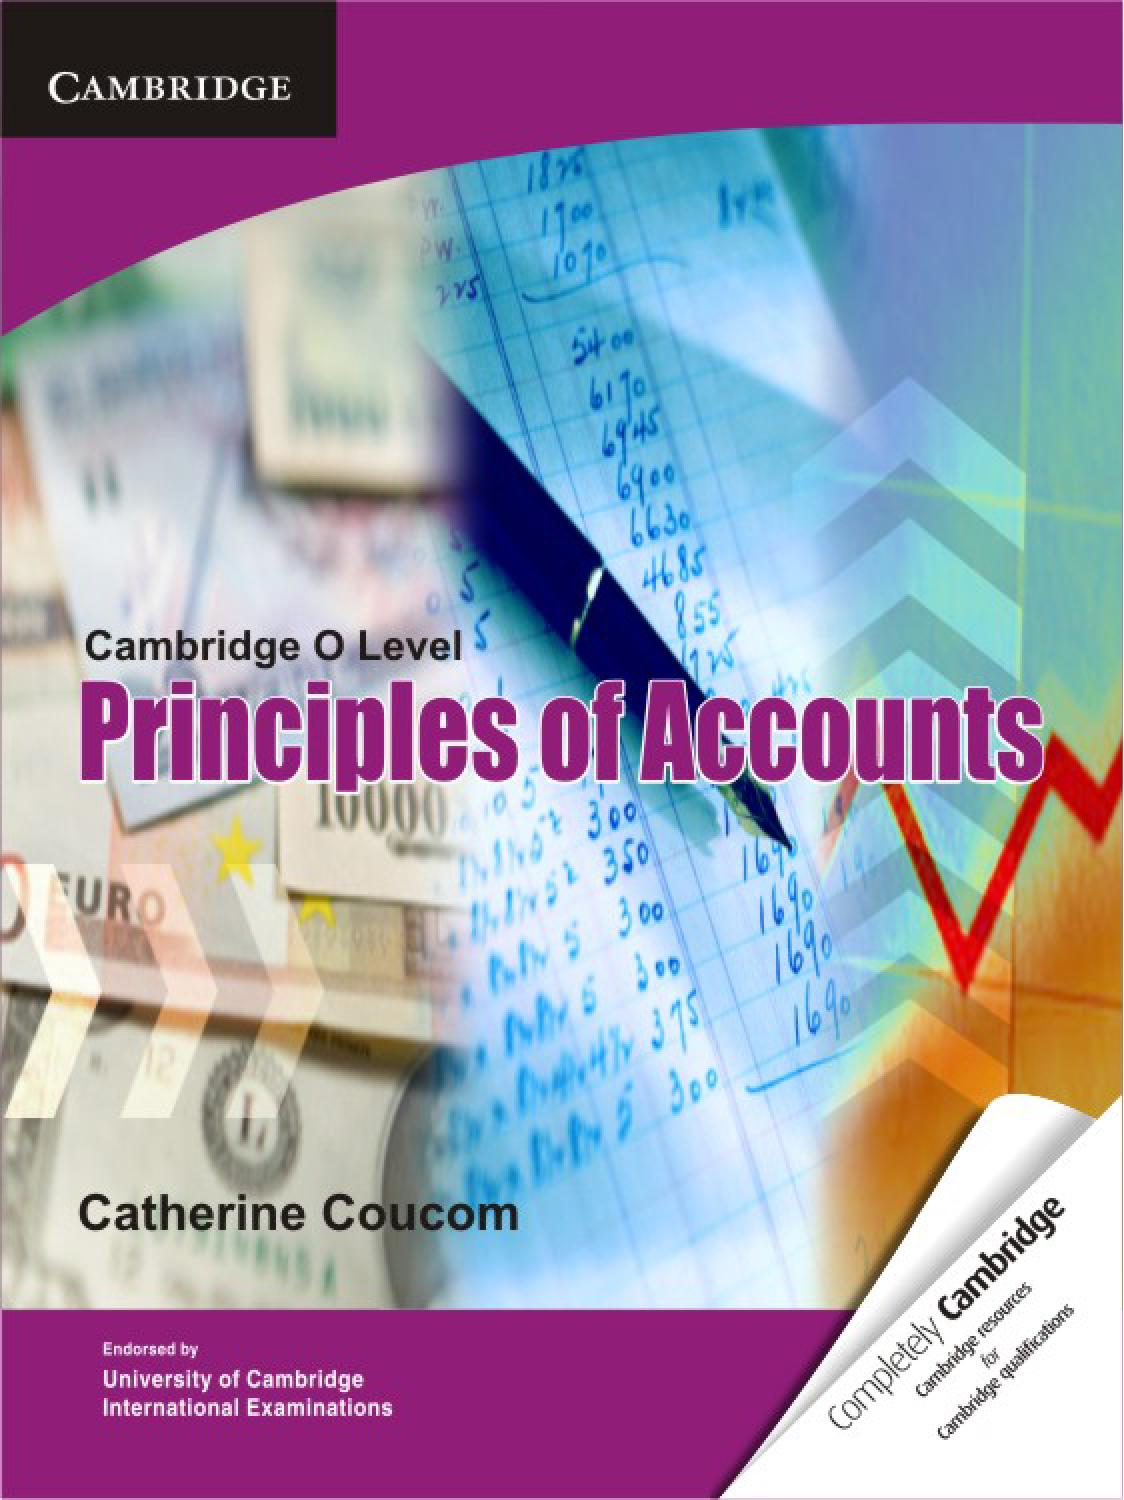 Principles of Accounting, 11th Edition - PDF Free Download